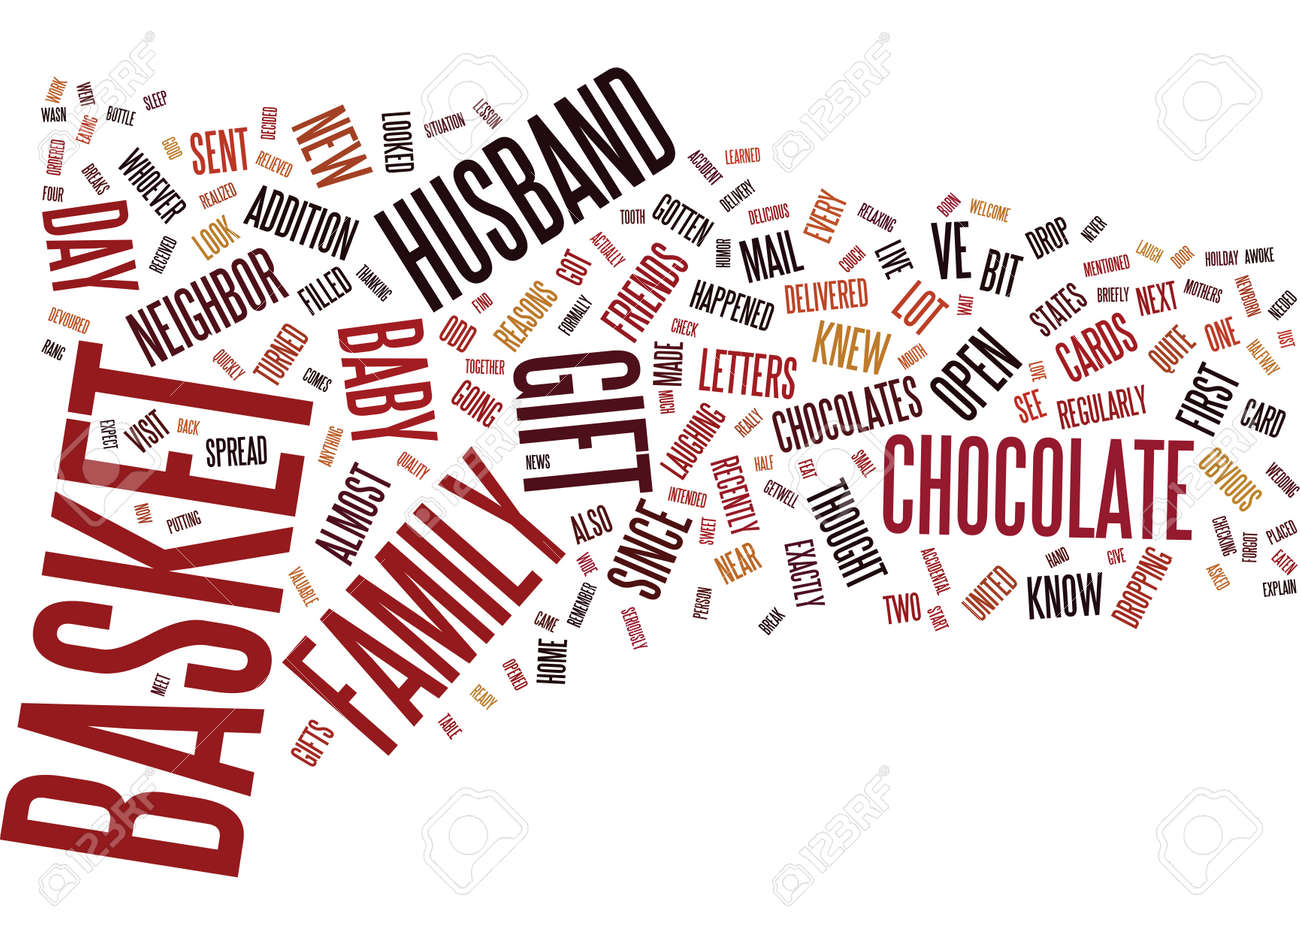 THE ACCIDENTAL GIFT BASKET Text Background Word Cloud Concept